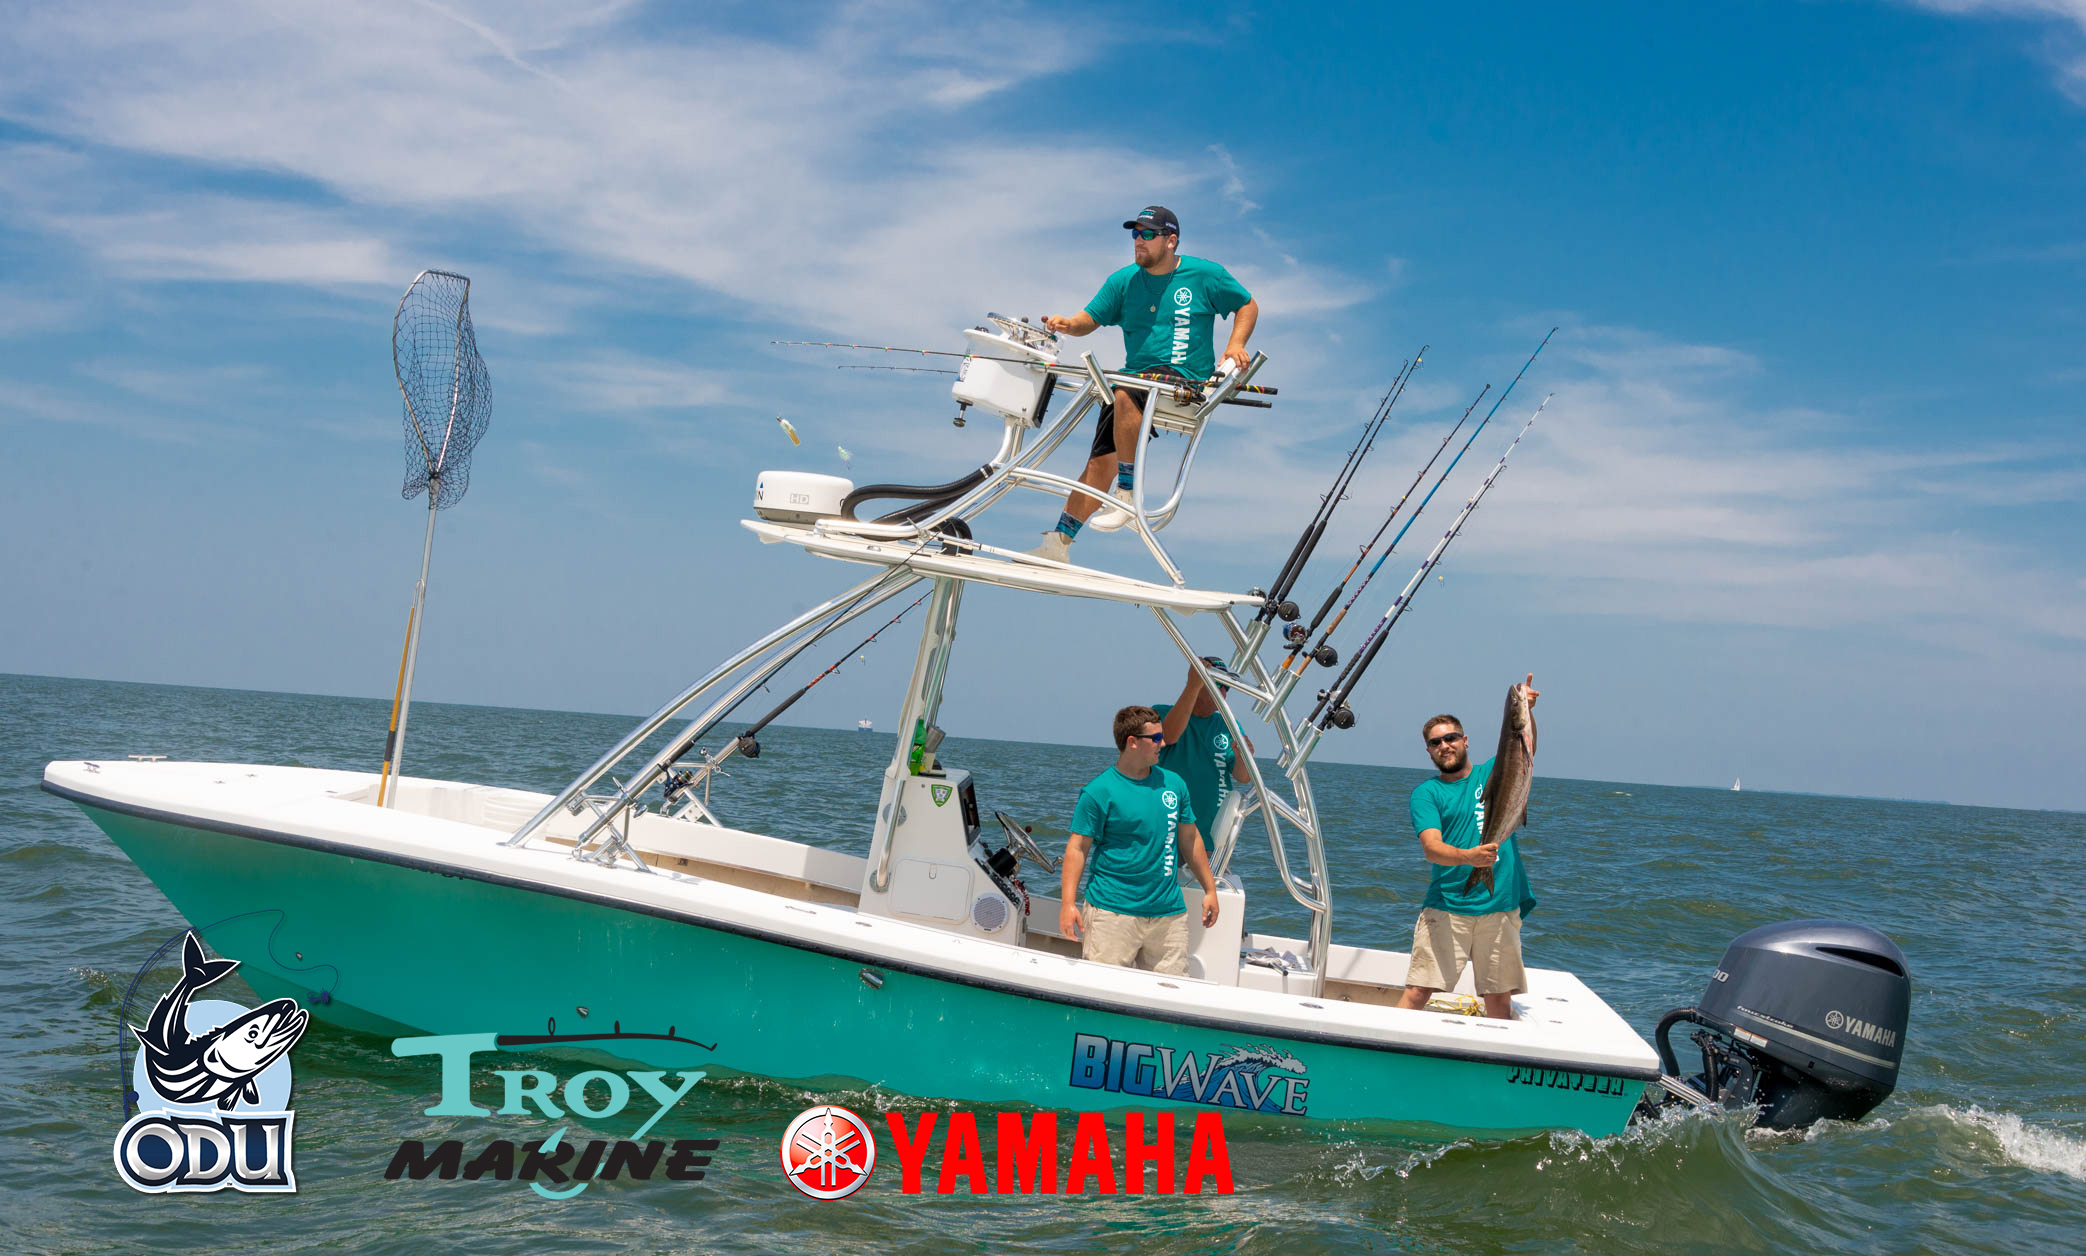 Troy Marine is a Full Line Key Yamaha Marine dealer